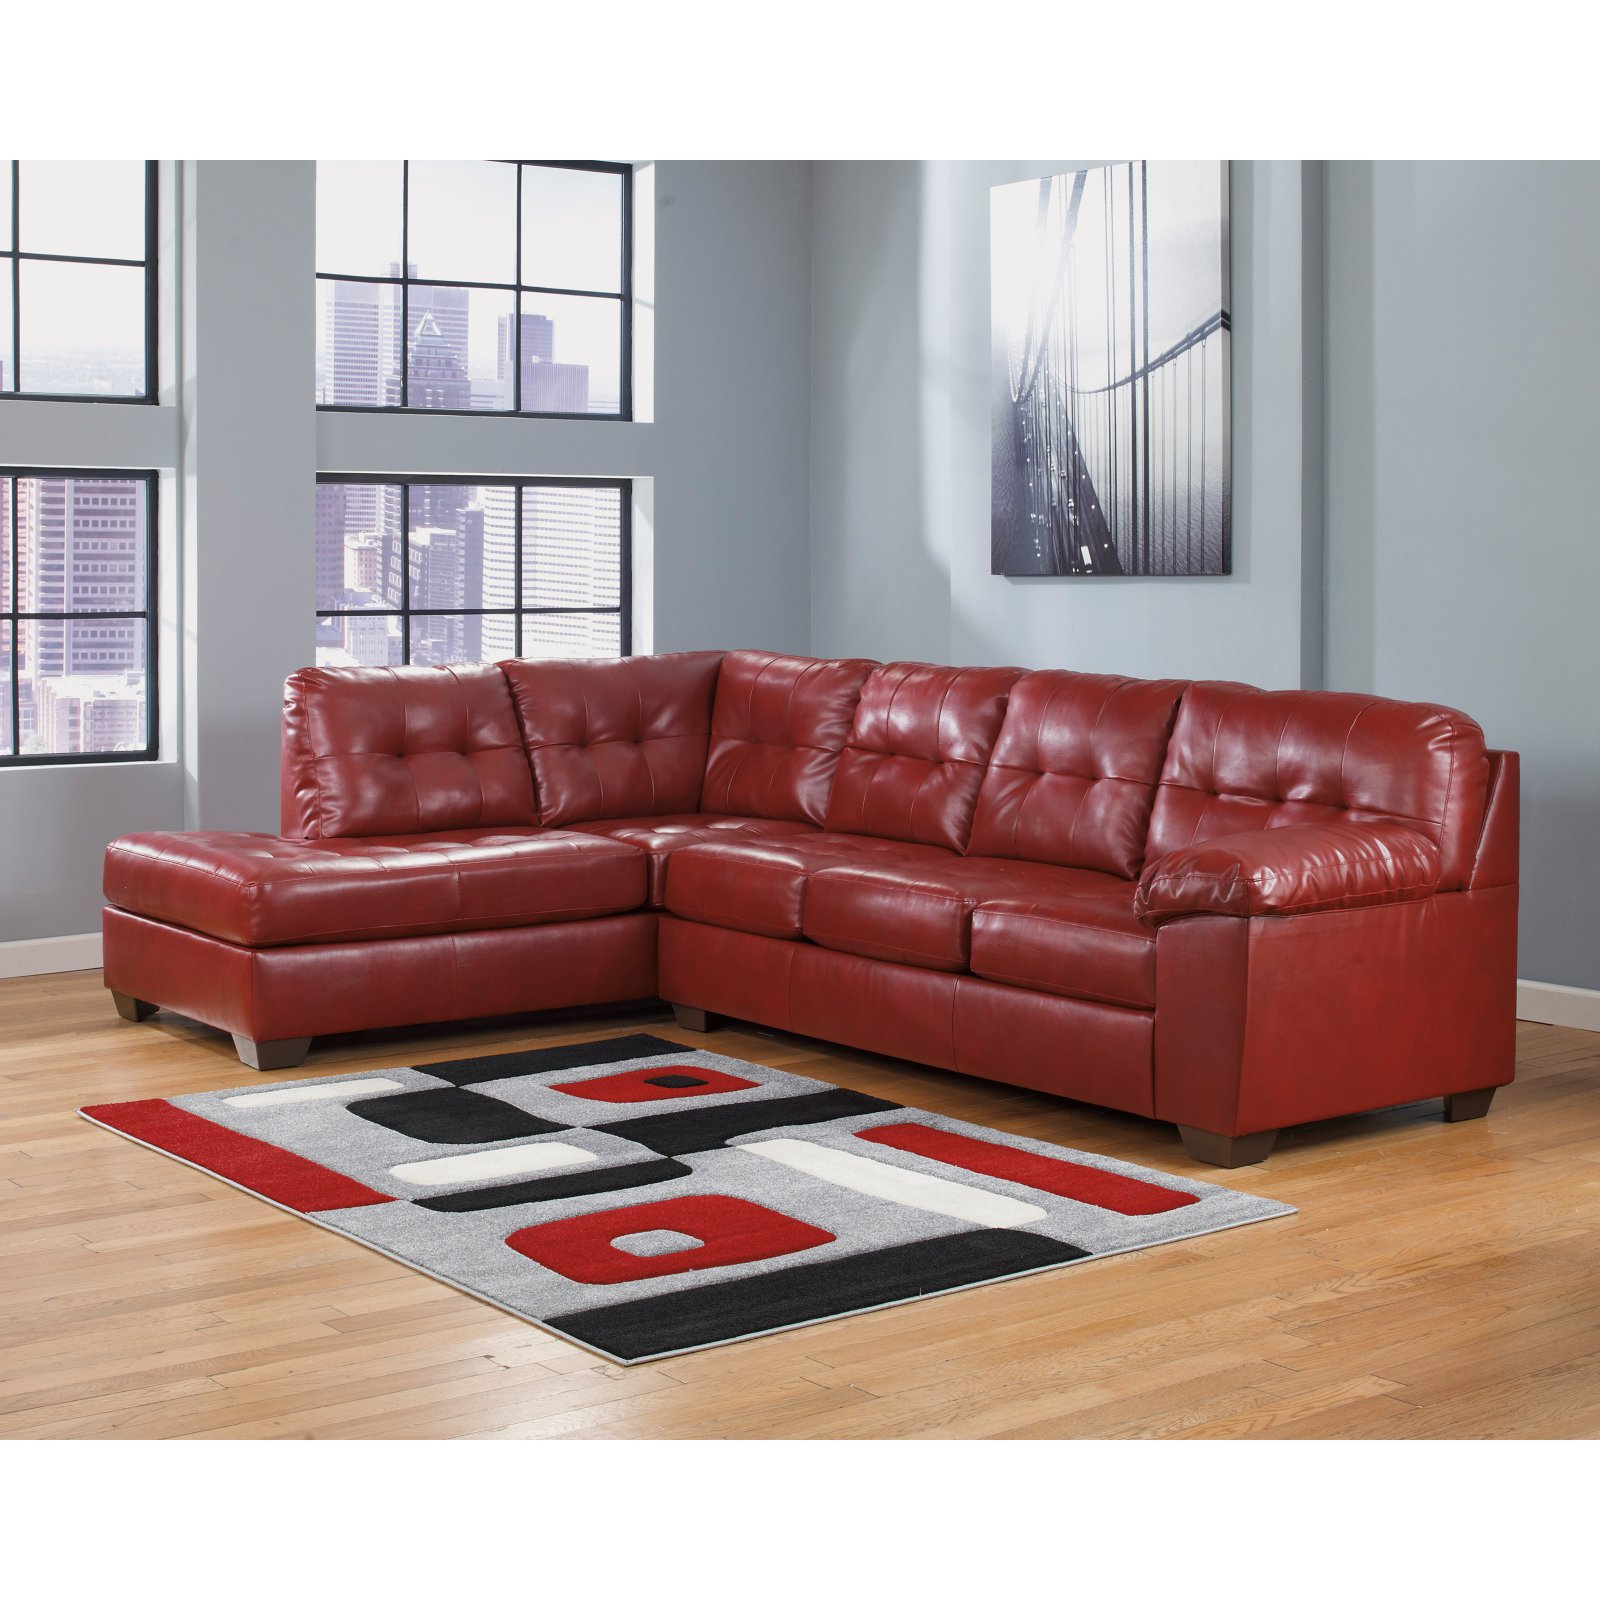 Signature Design by Ashley Alliston Leather Sectional